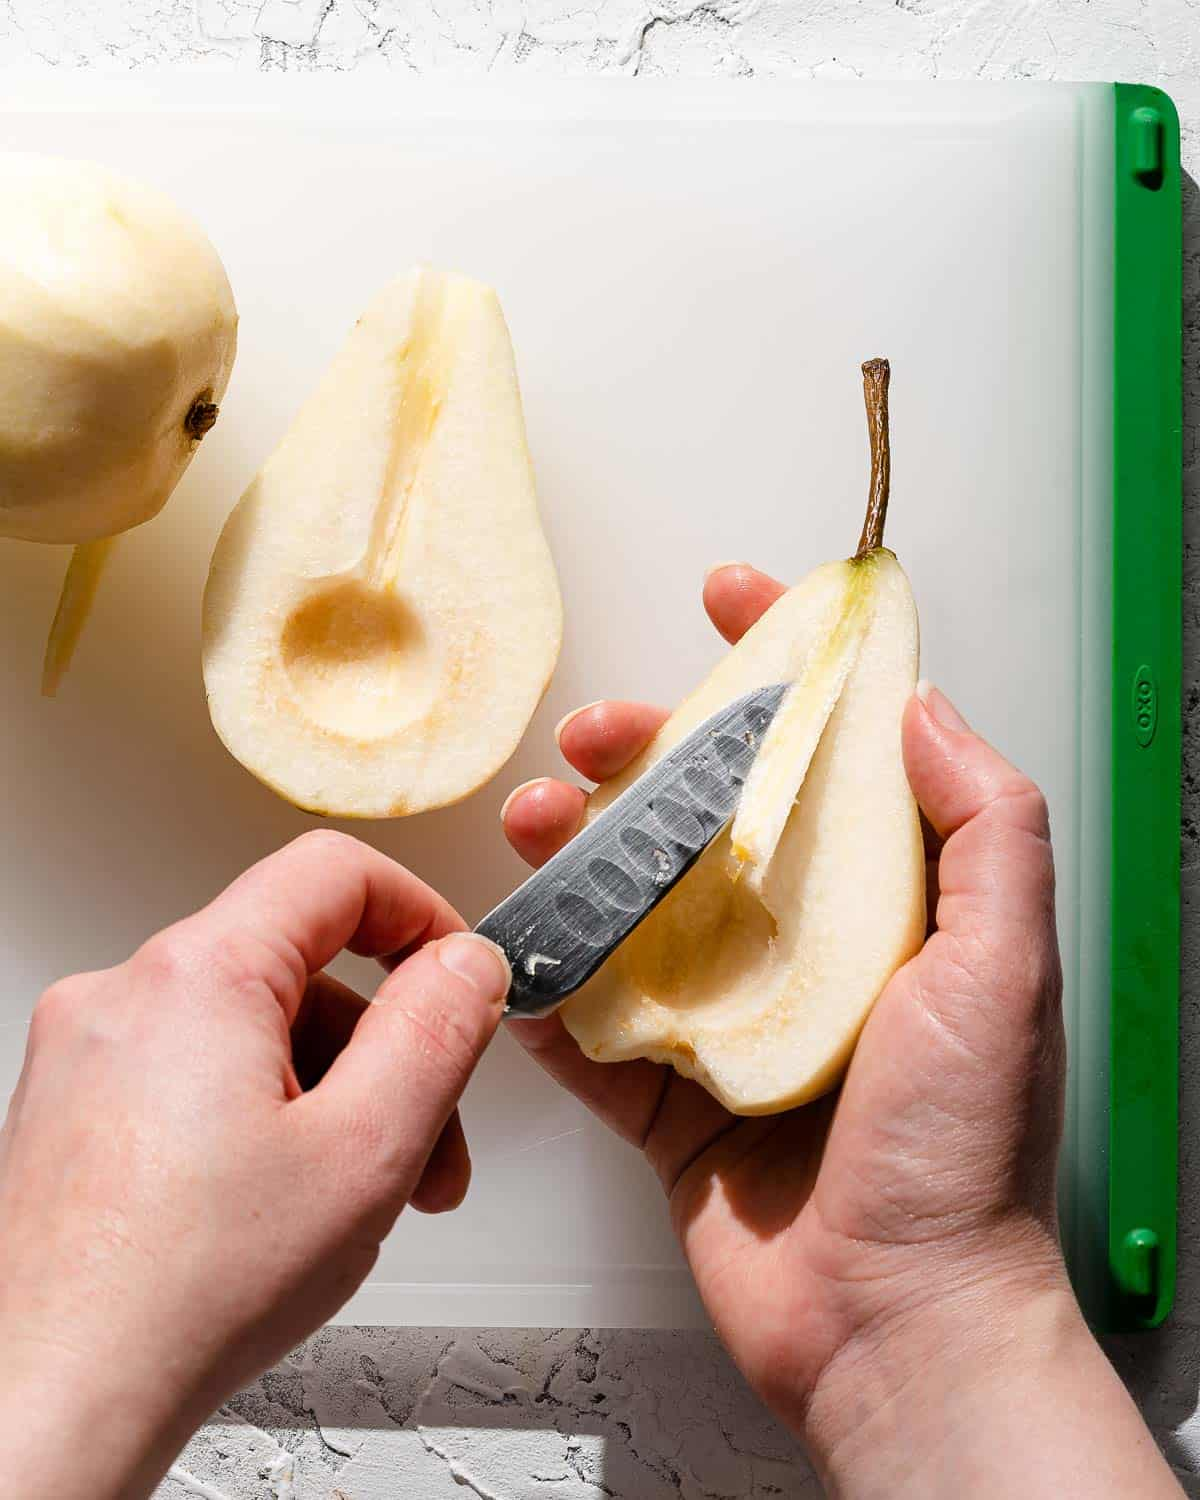 paring knife cutting stem out of center of pear